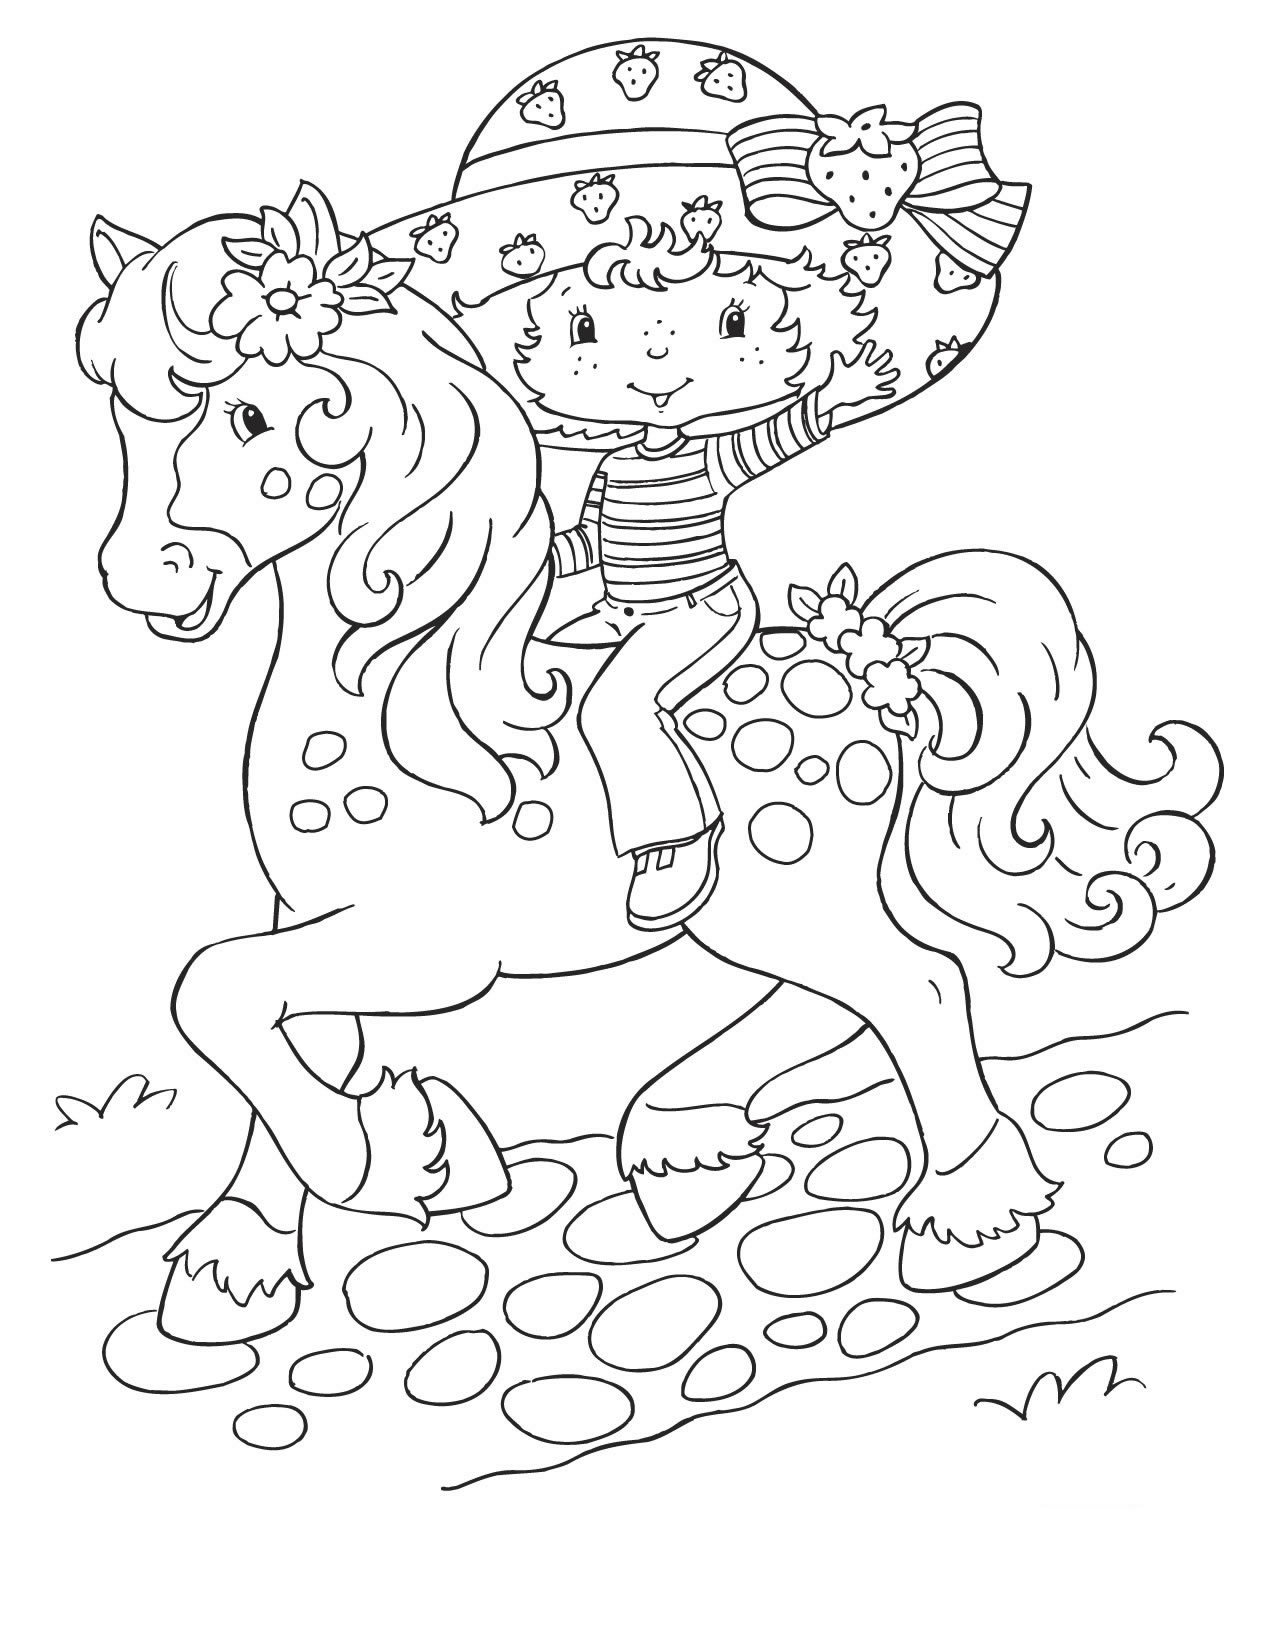 11 Strawberry Shortcake Coloring Page To Print Print Color